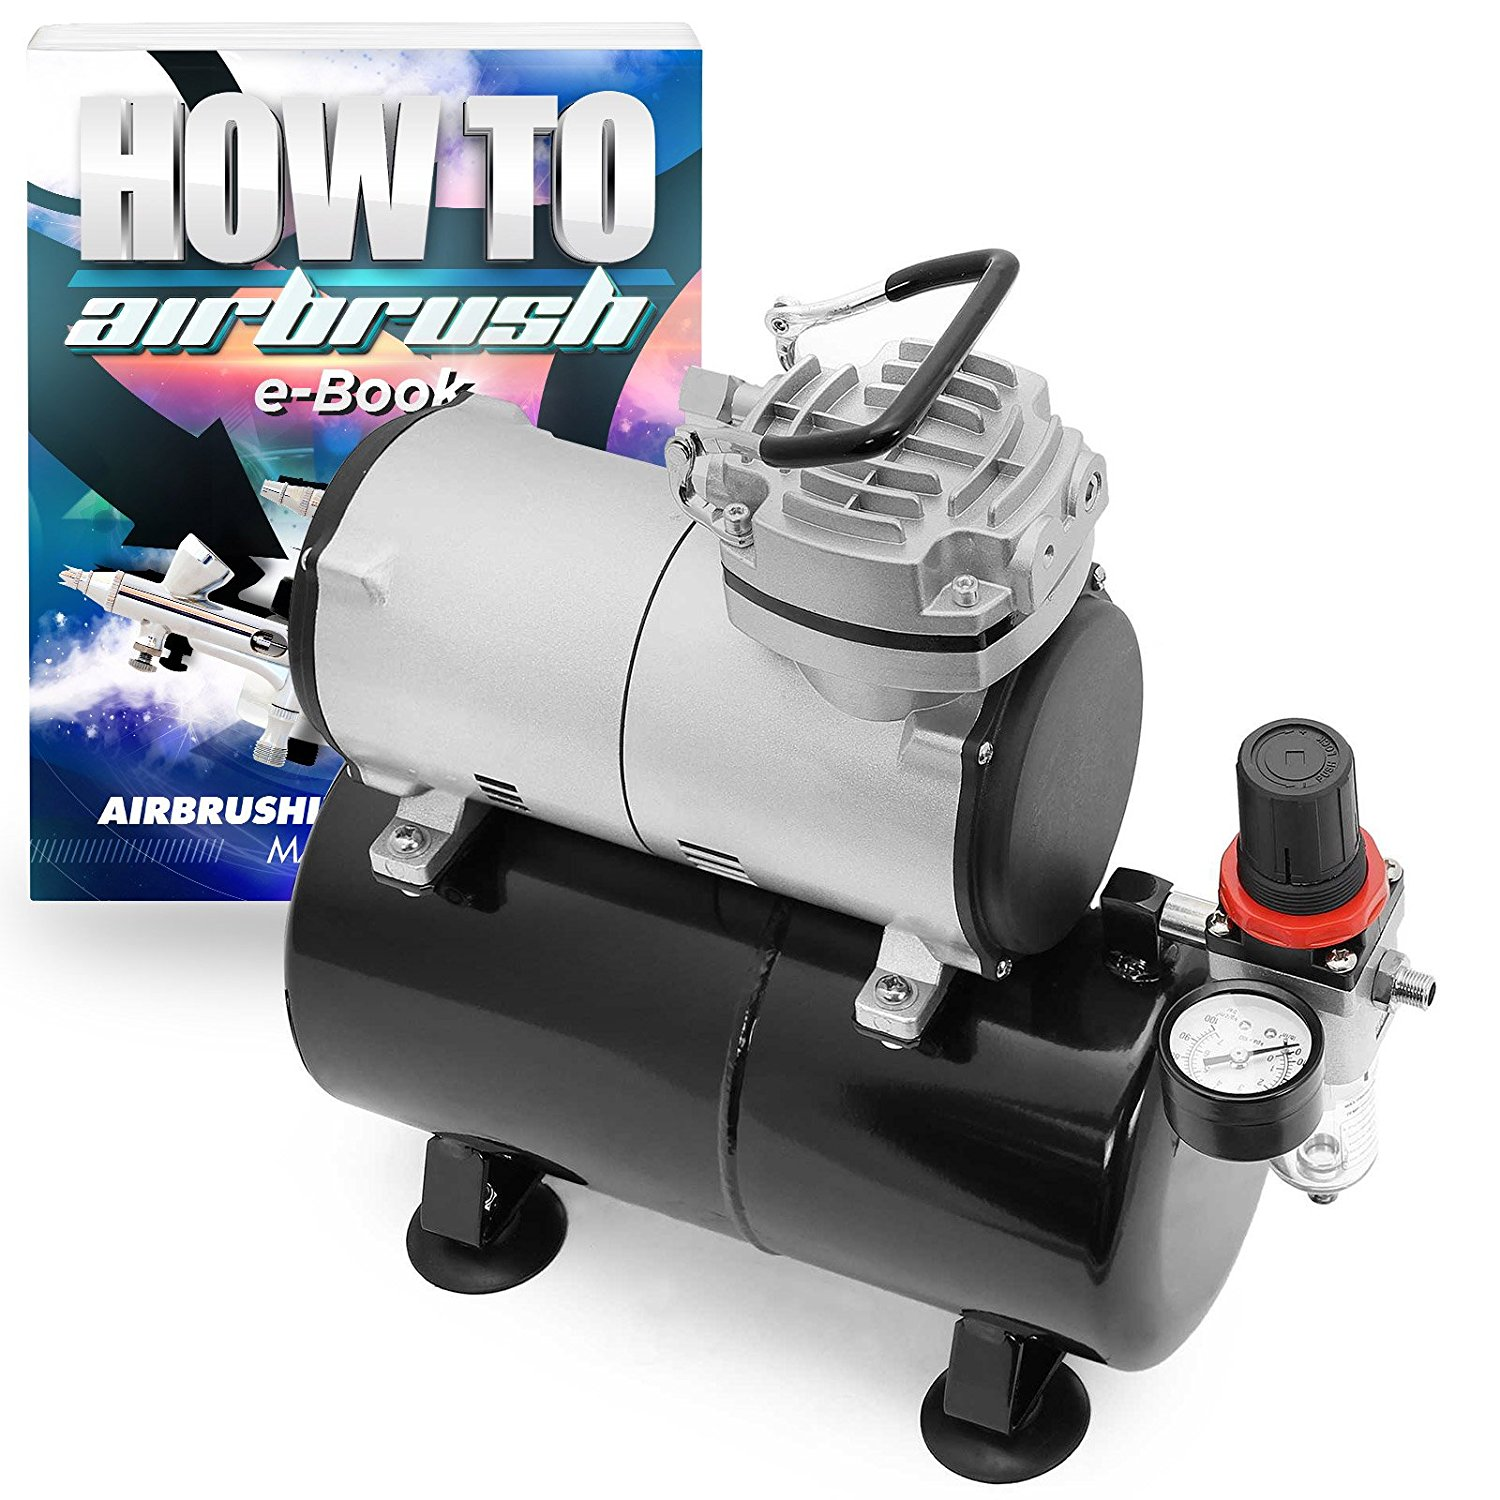 PointZero Portable Airbrush Air Compressor Oil-less 3L Tank 1/5 HP